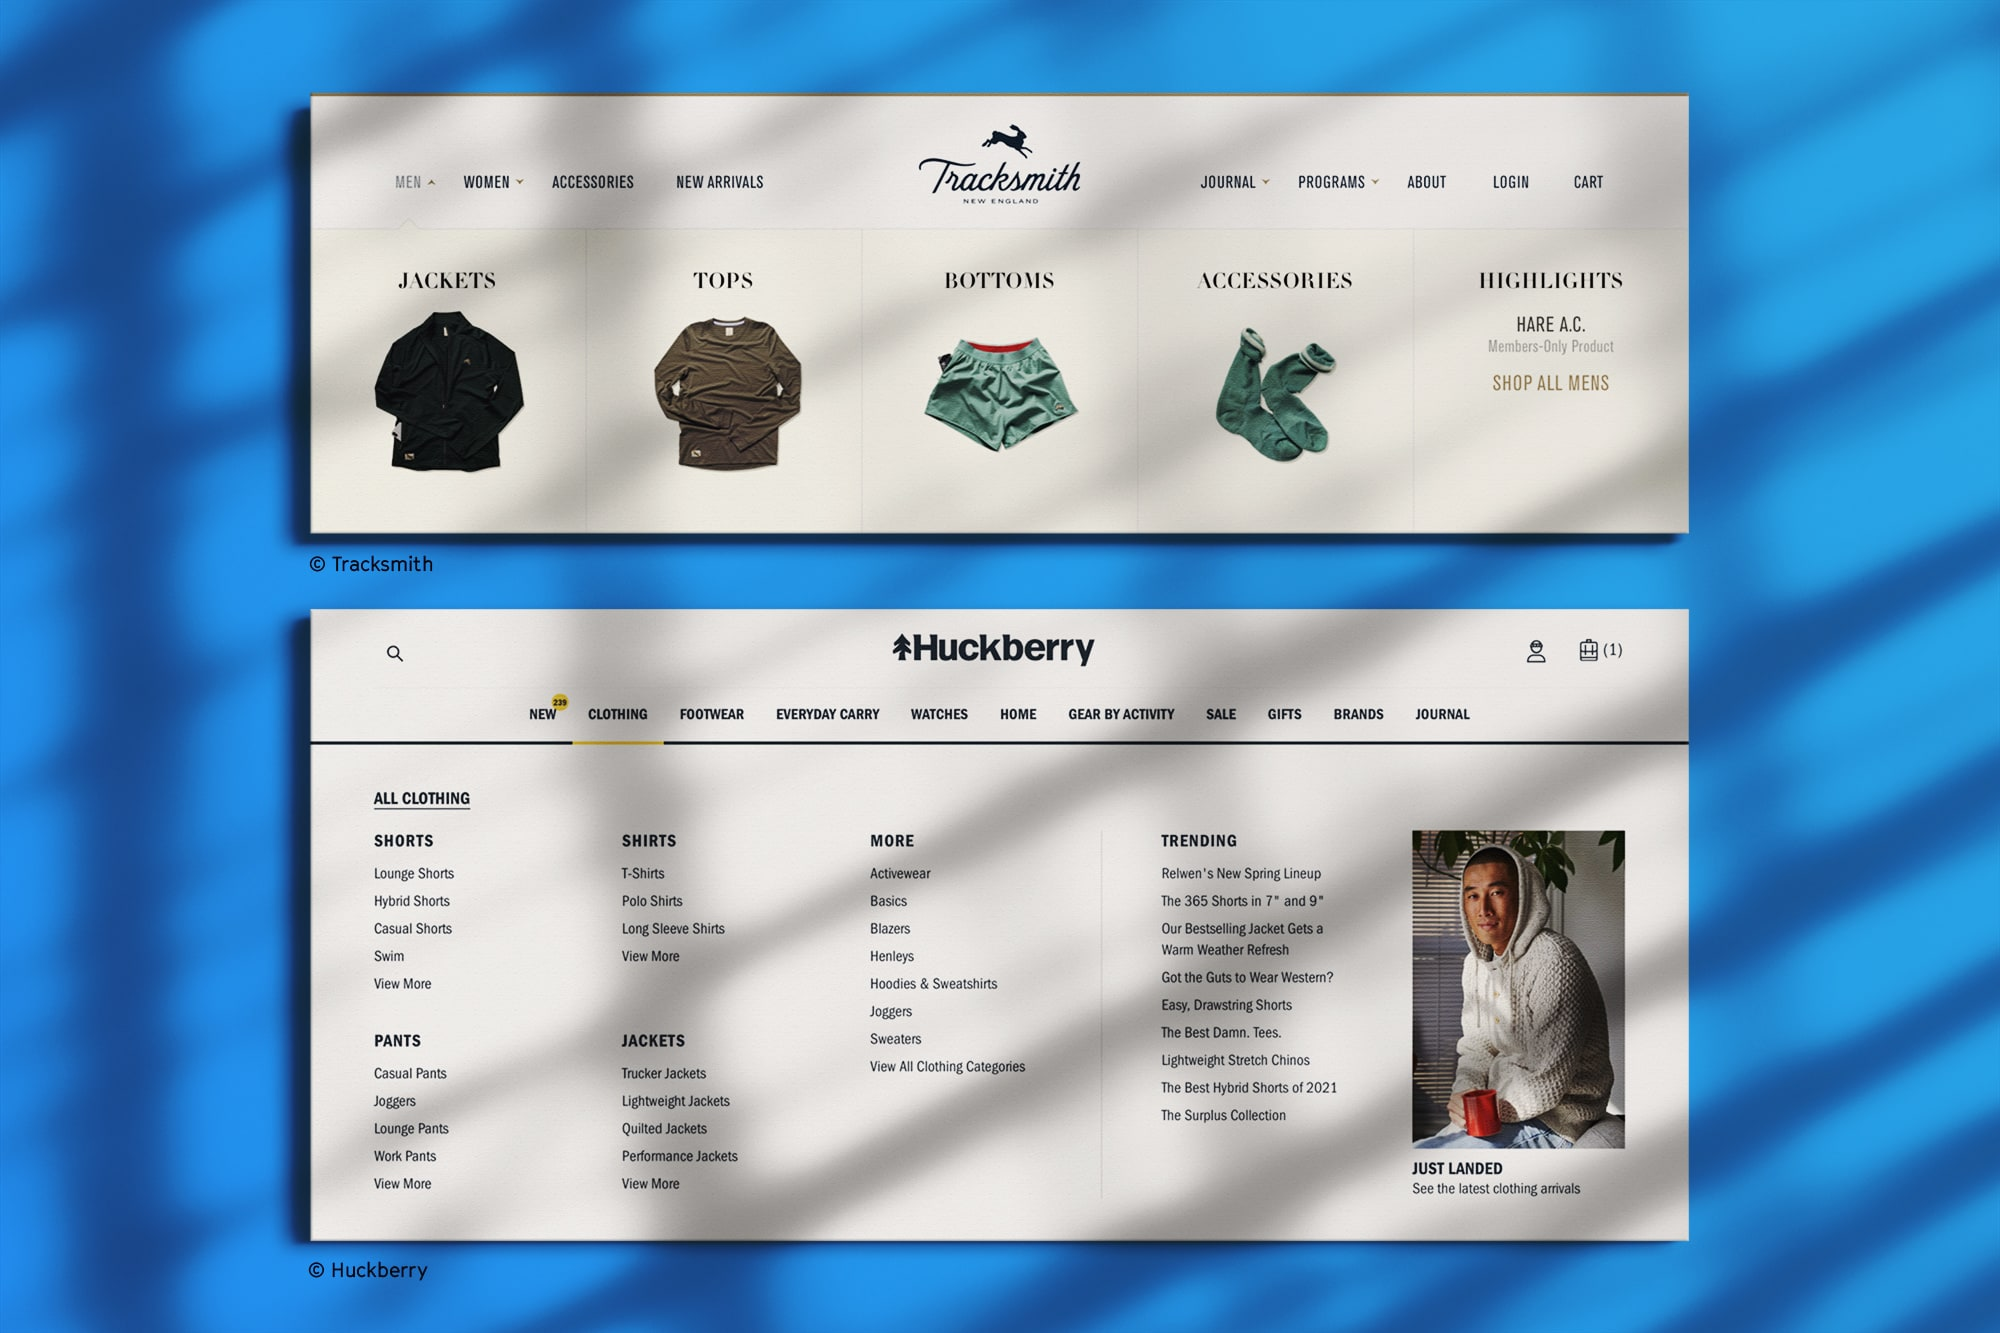 Navigation menus from Tracksmith & Huckberry that show all product categories and images of products to help guide visitors to what they're looking for